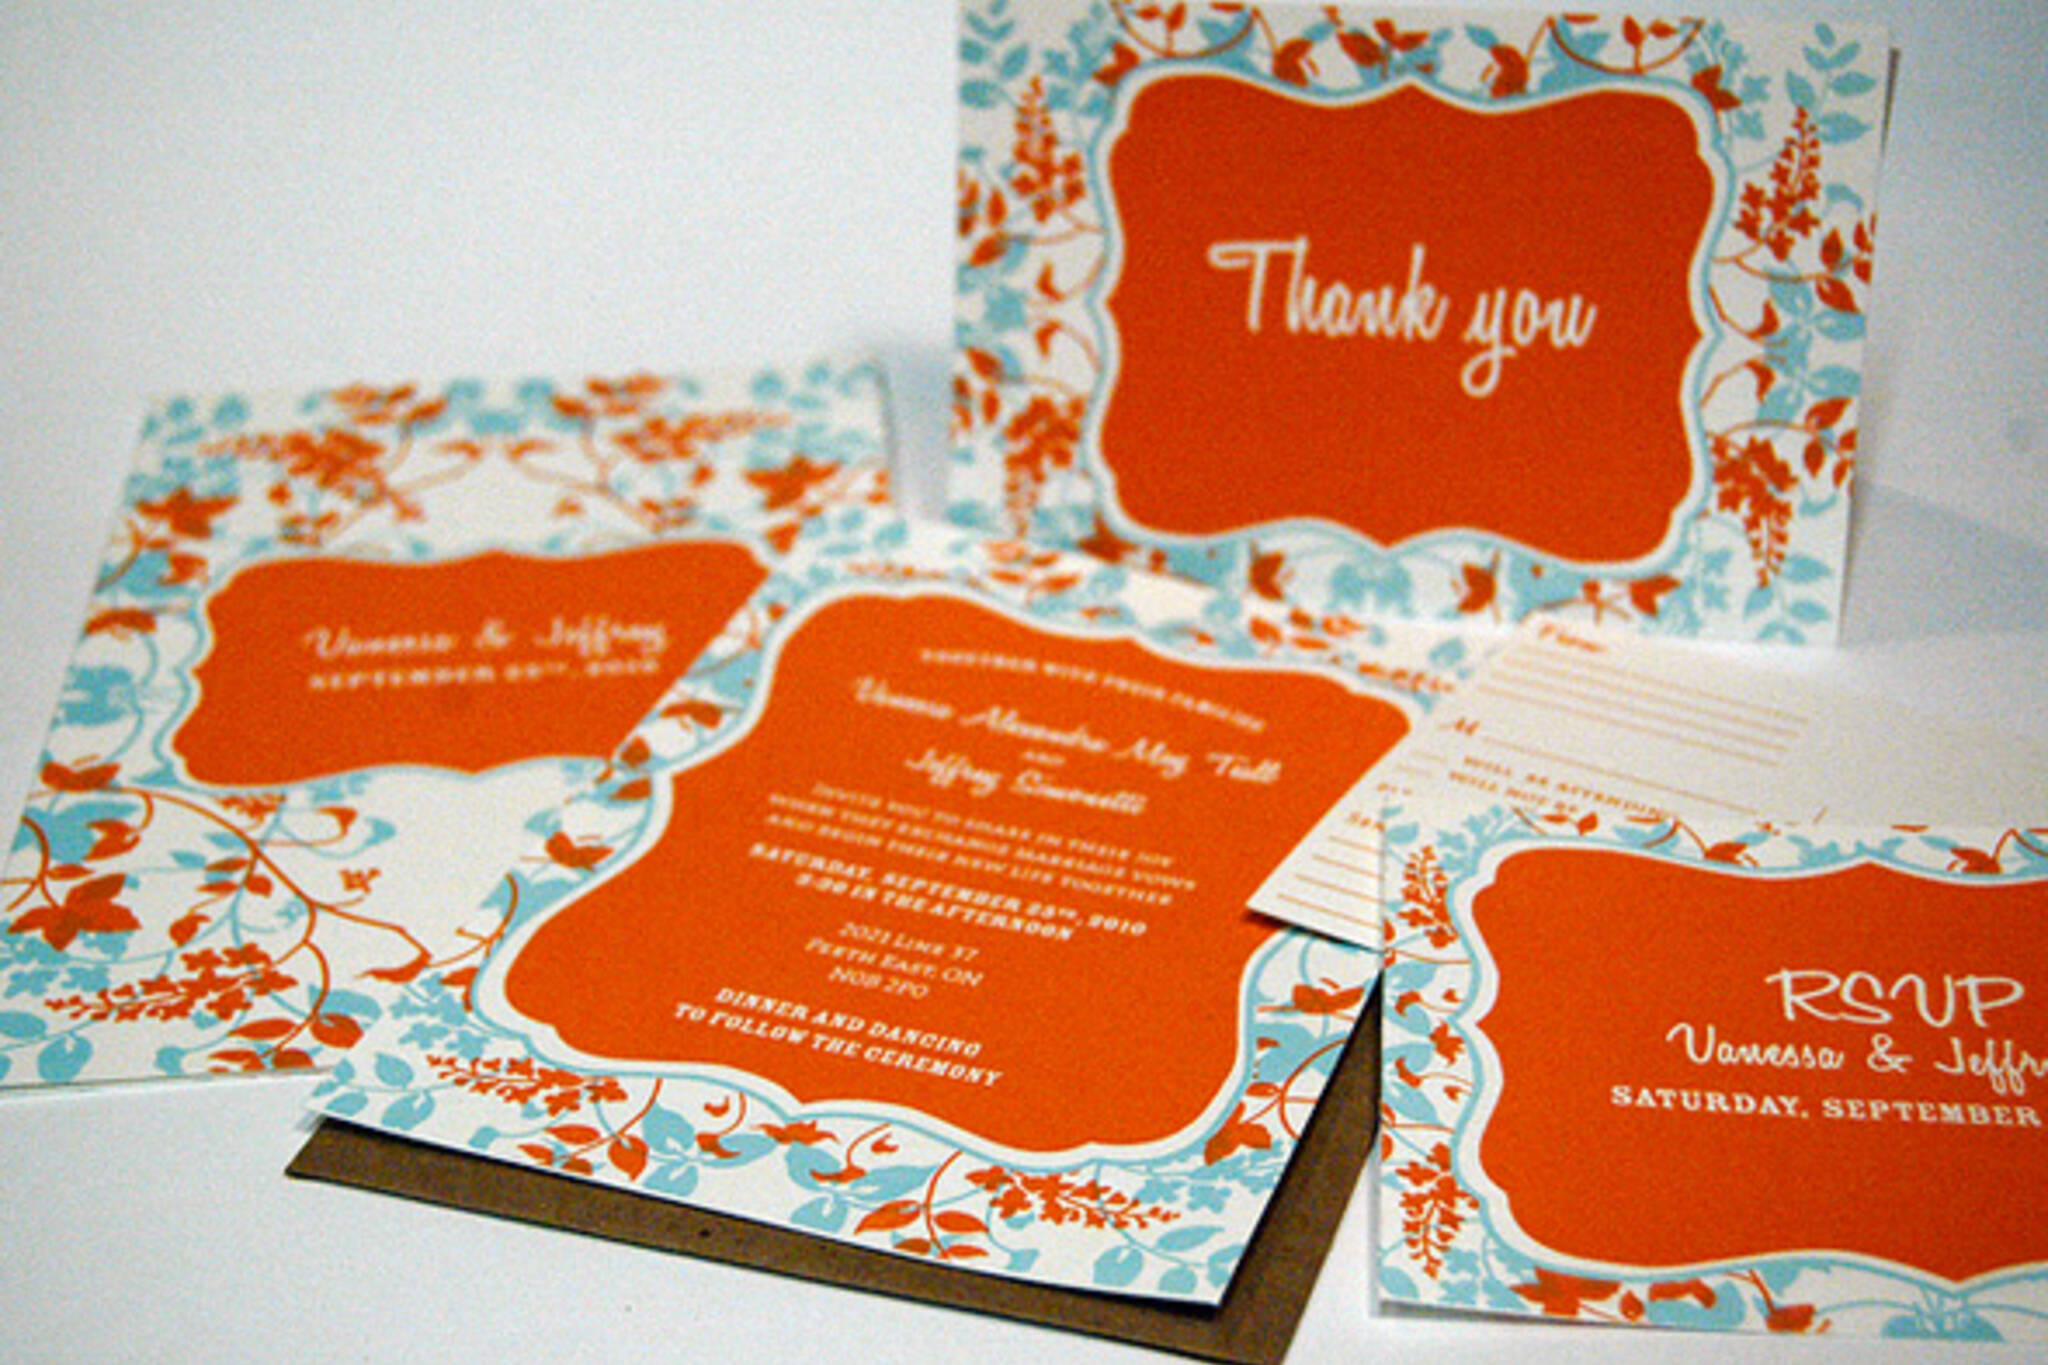 The top 10 cheap wedding invitations in Toronto